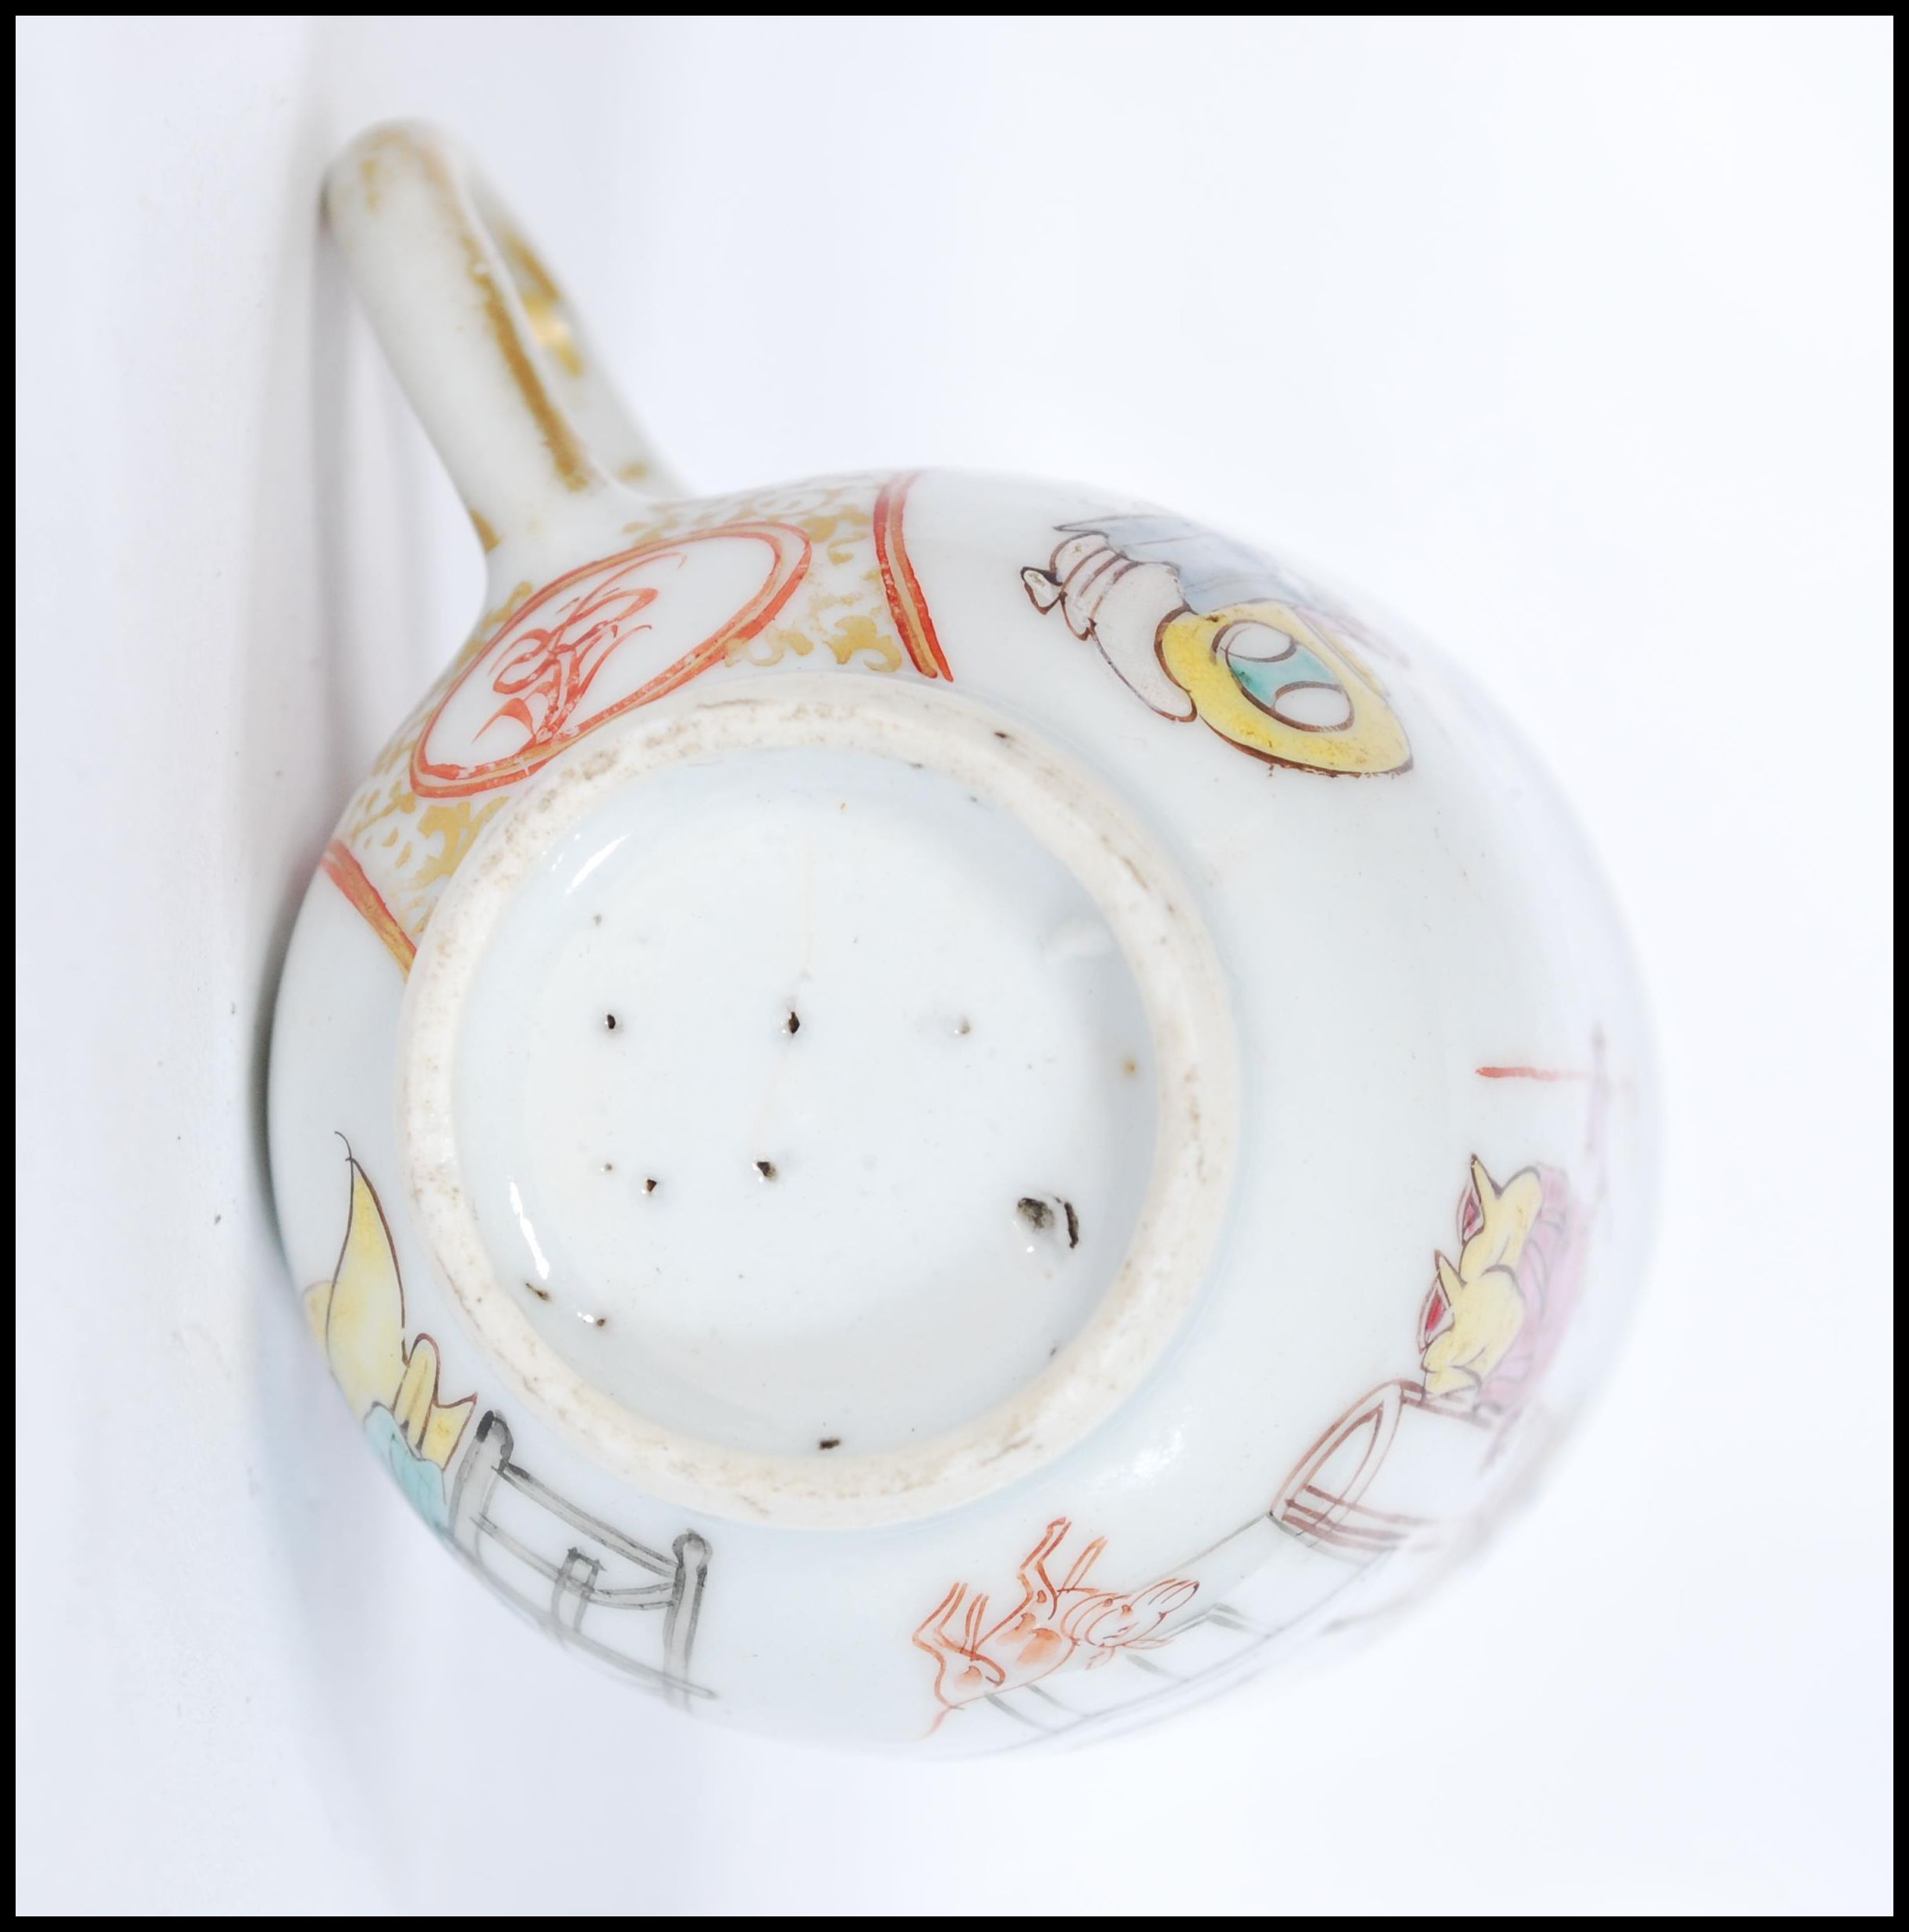 Lot 46 - An 18th century Chinese porcelain teacup depicting traditional domestic scenes with gilt and ocher